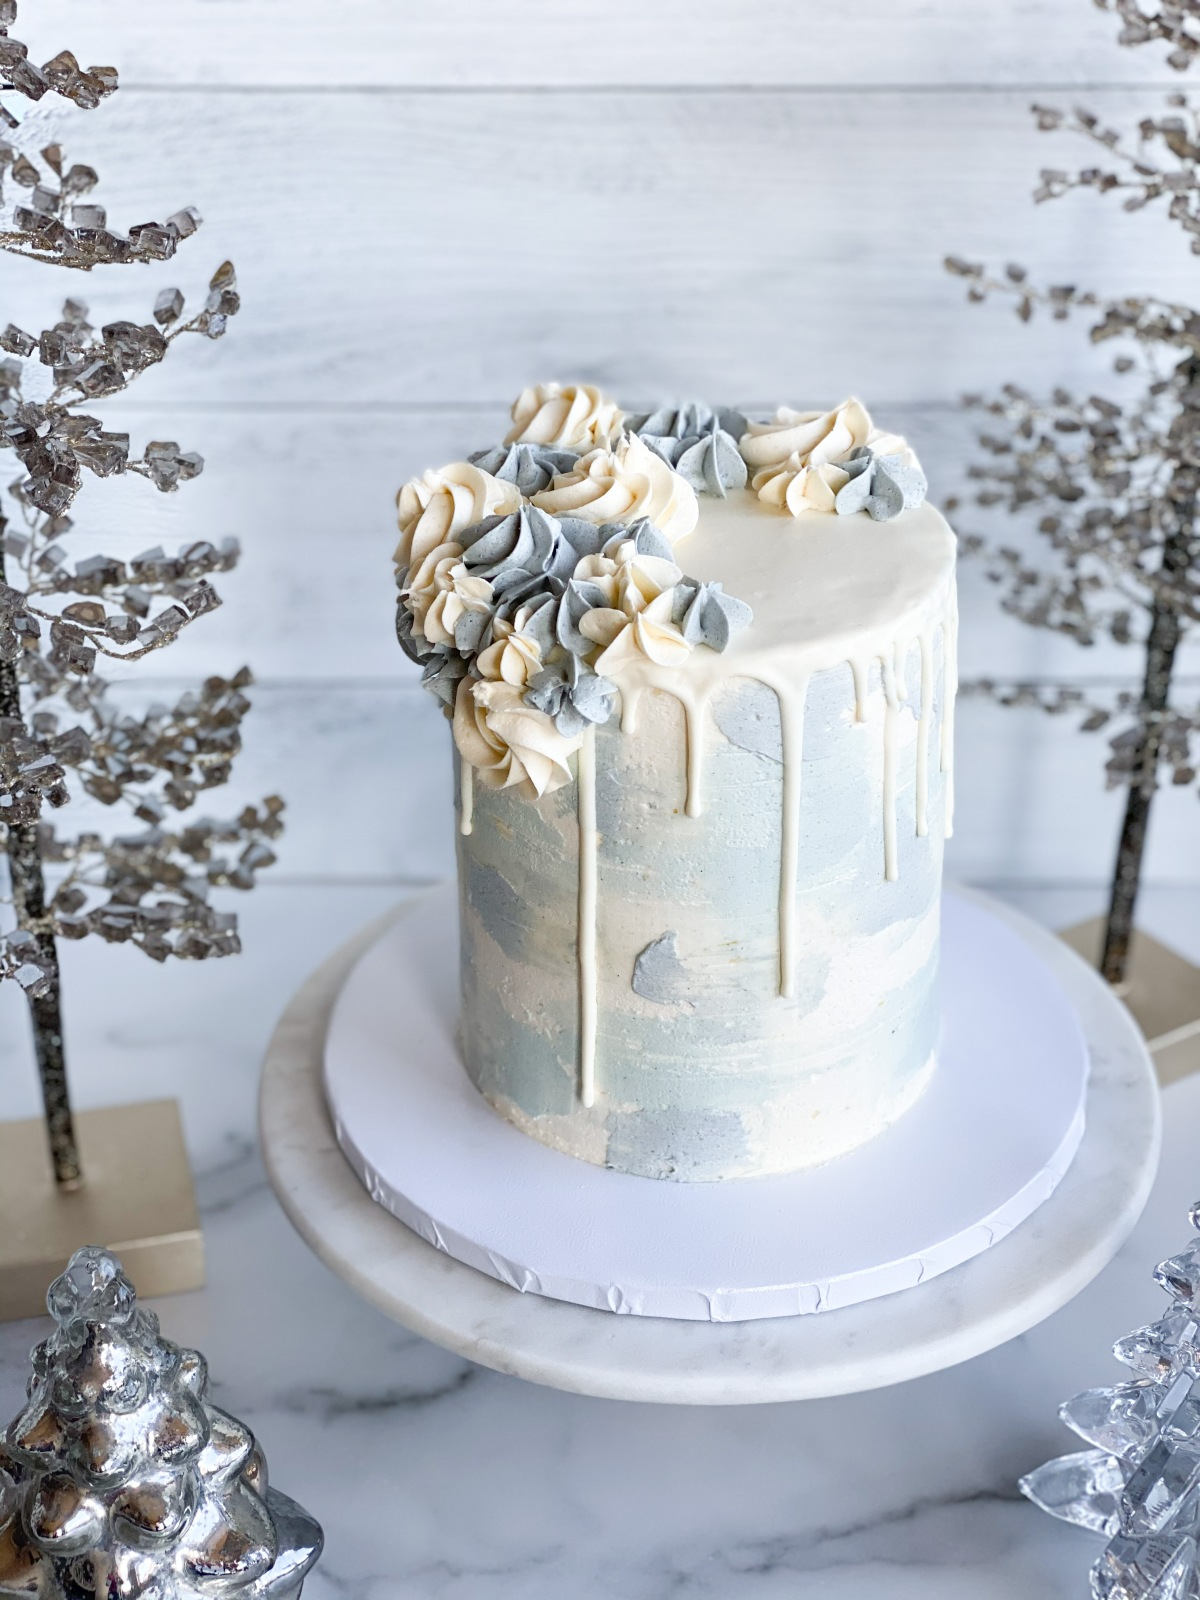 Vendor Spotlight: Figs & Honey Cake Co.